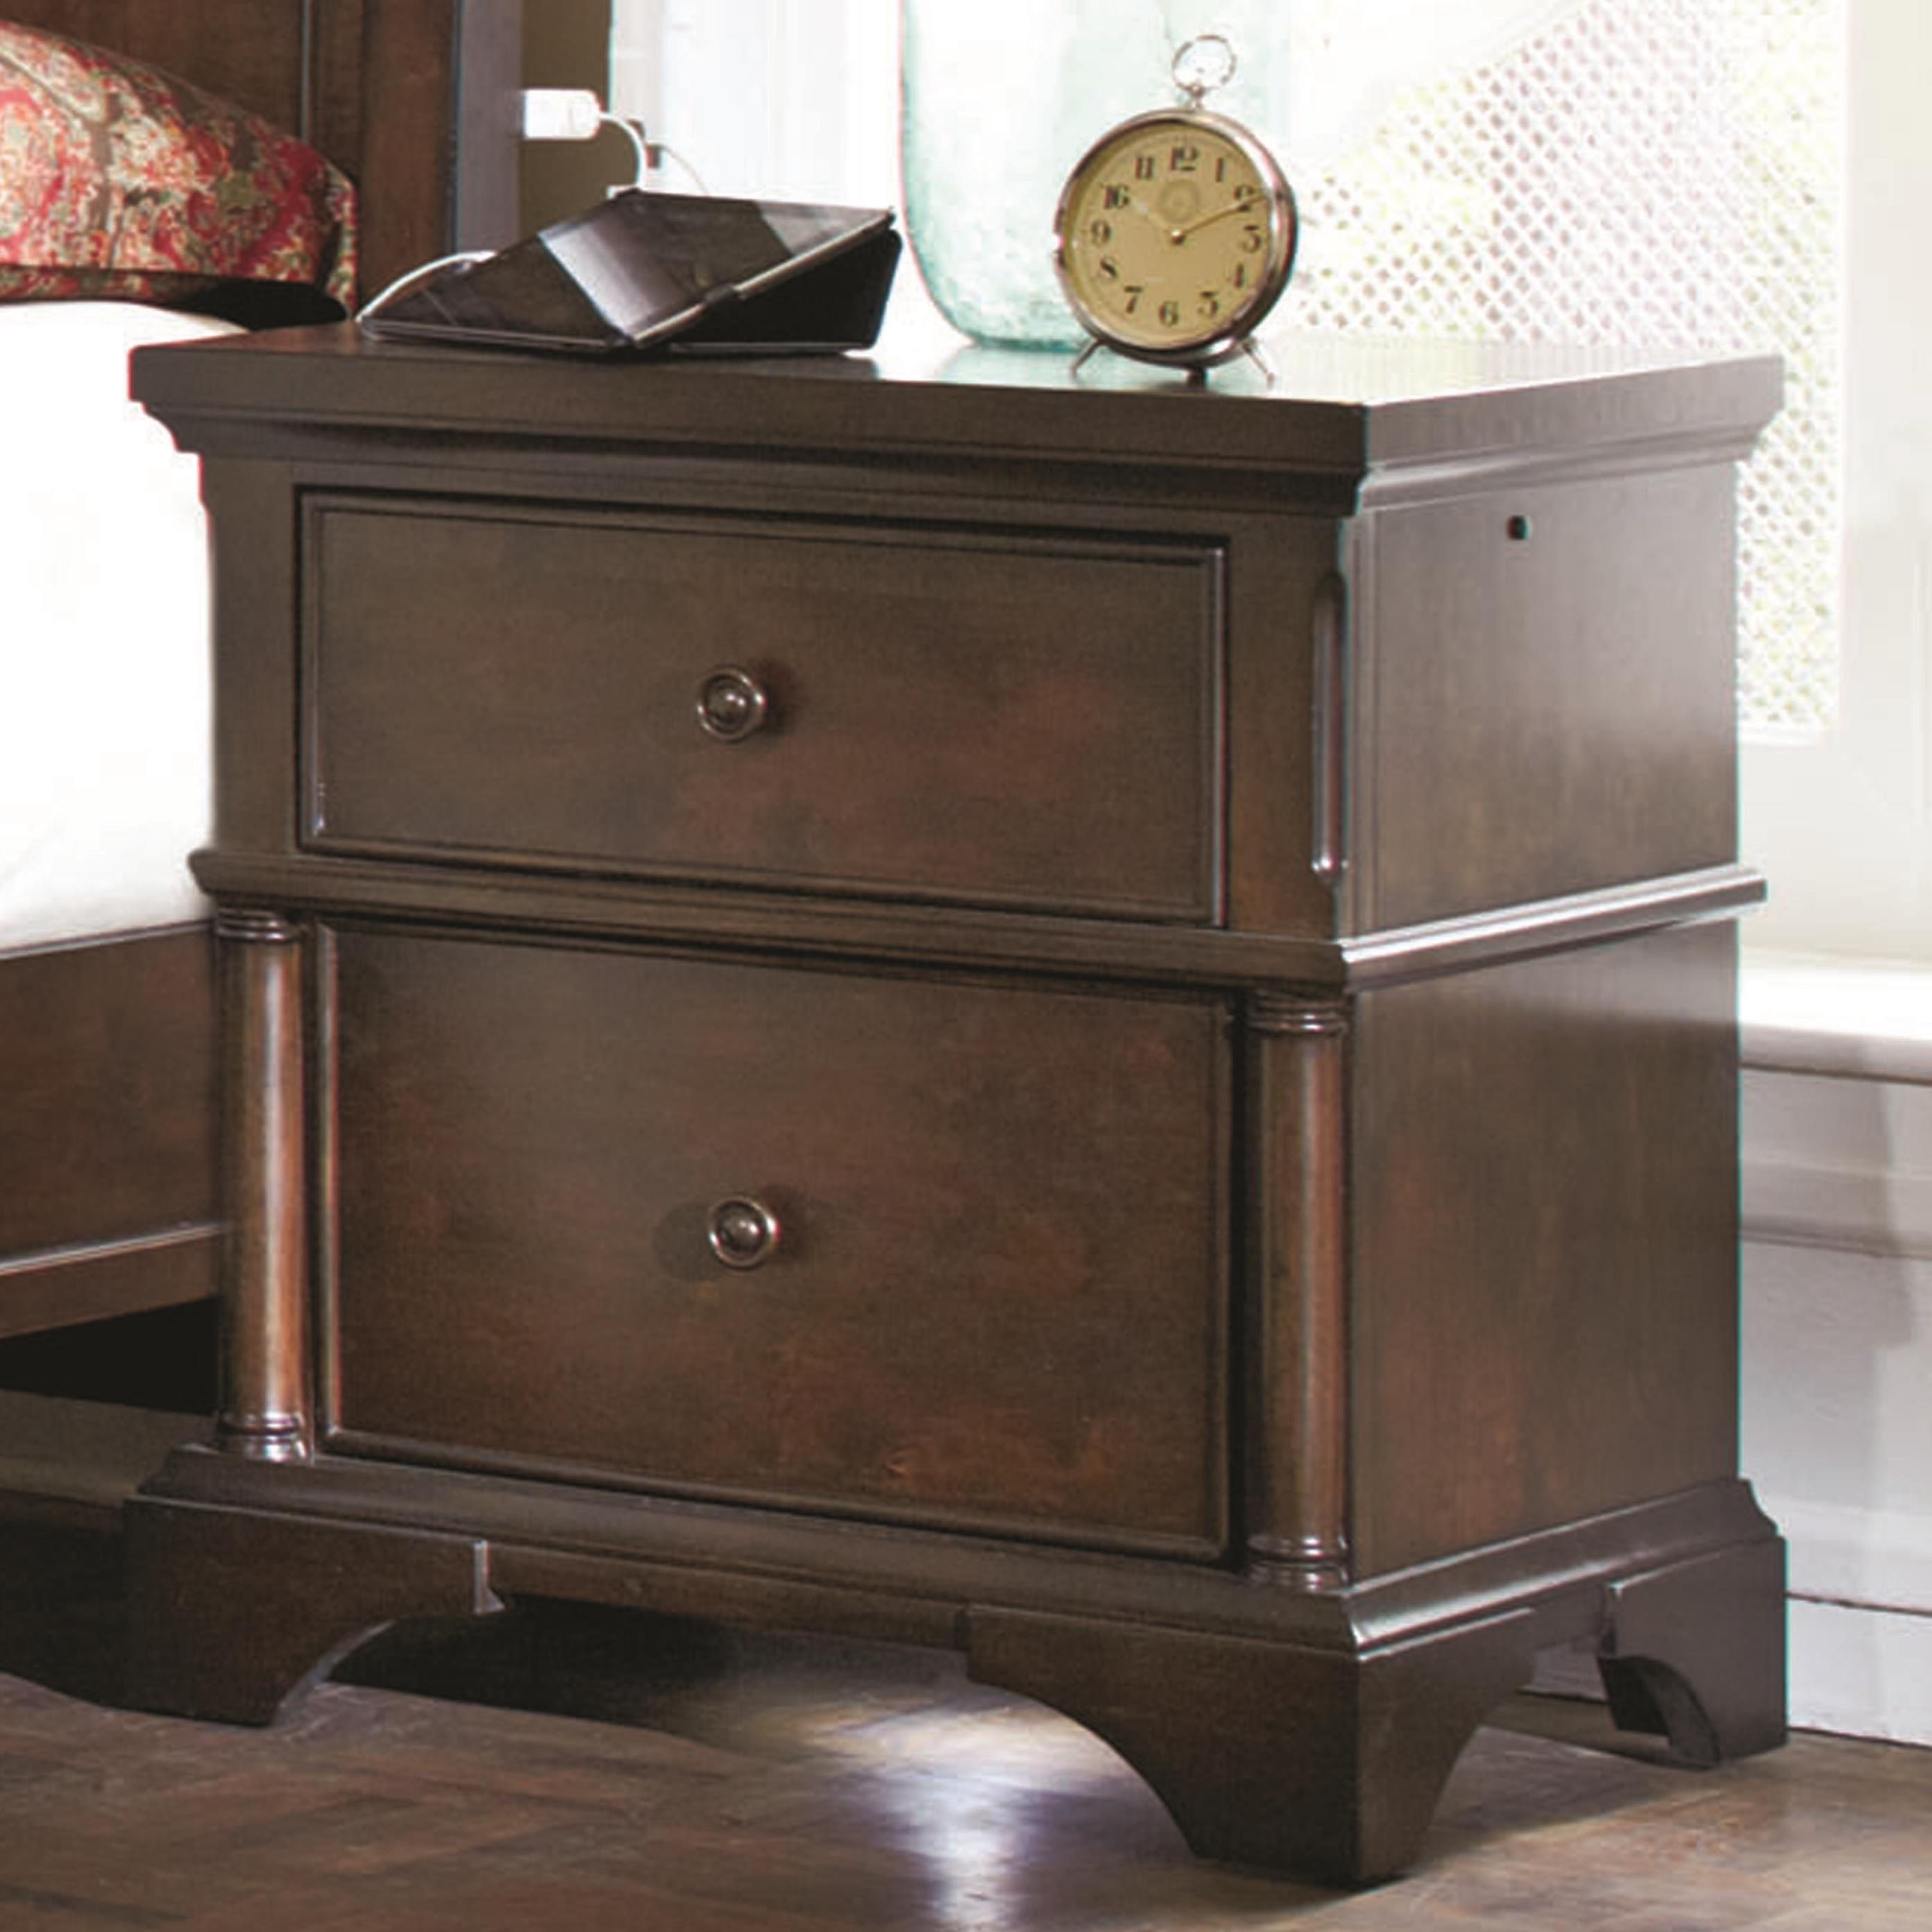 Morris Home Furnishings Banning Banning Nightstand - Item Number: 108-450